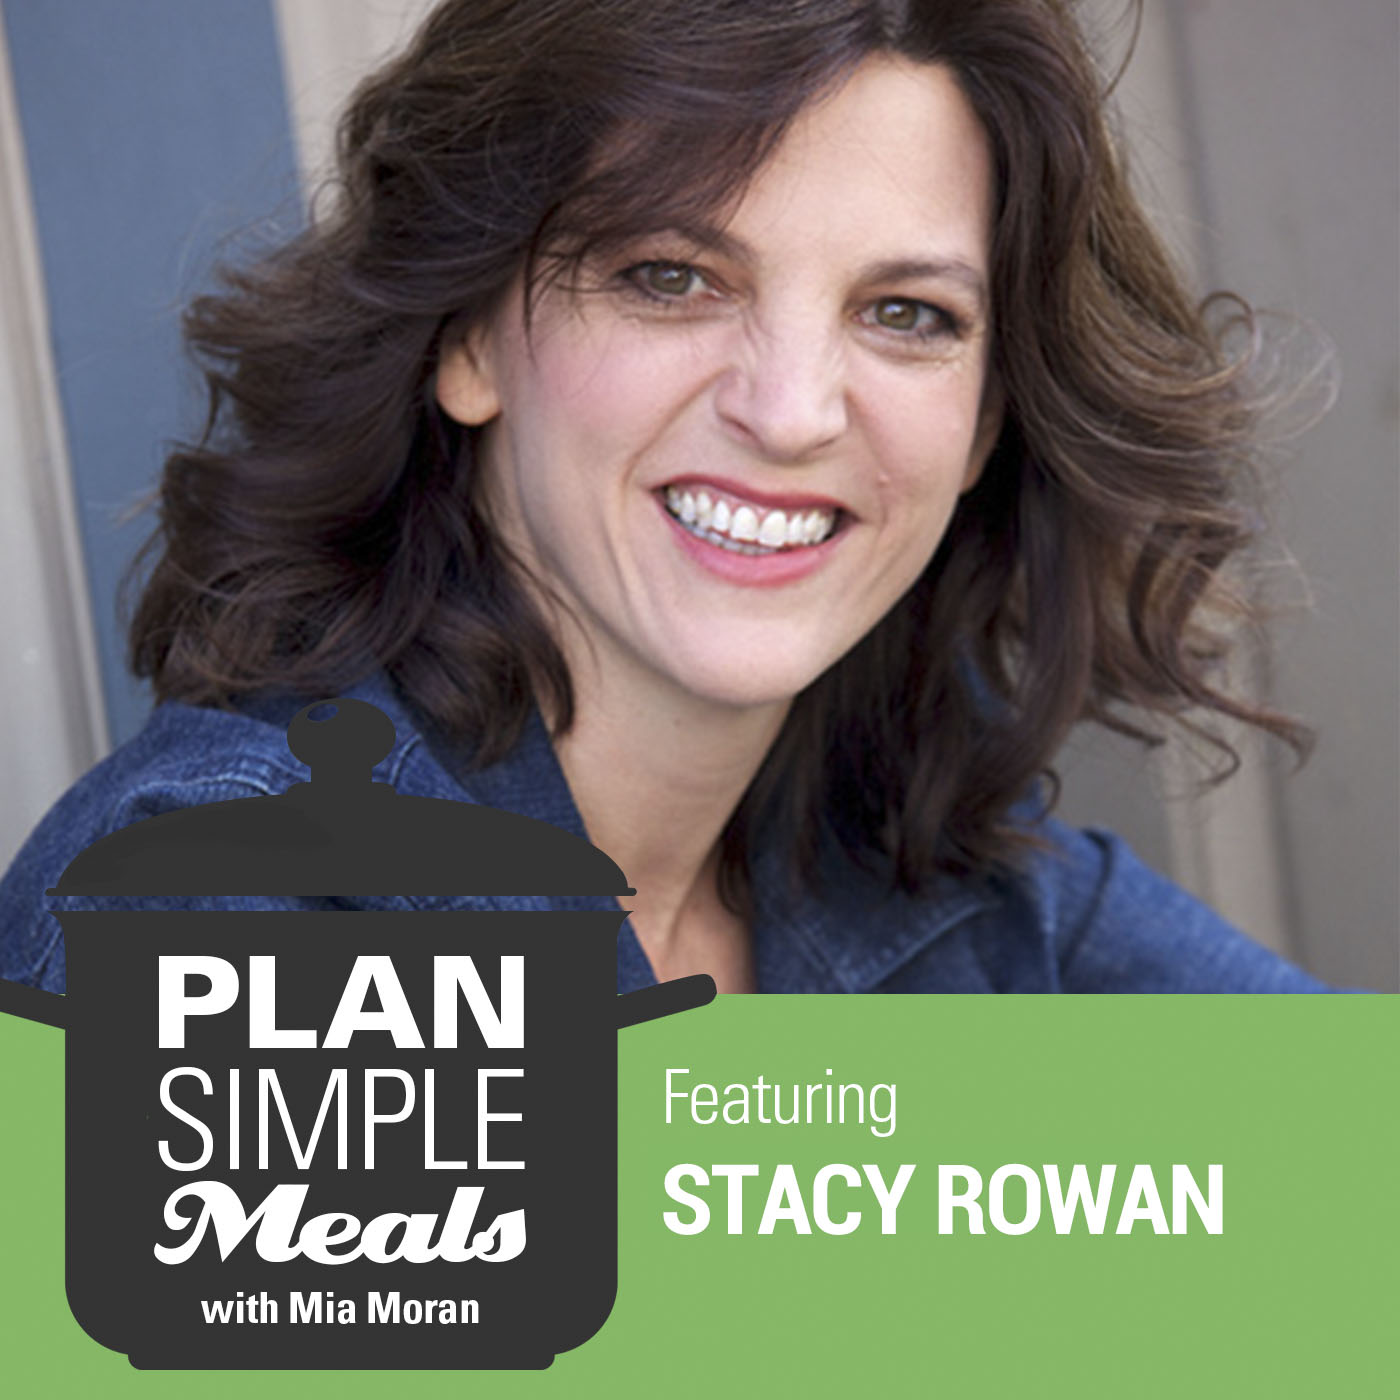 From Fast Food To Organic With Stacy Rowan